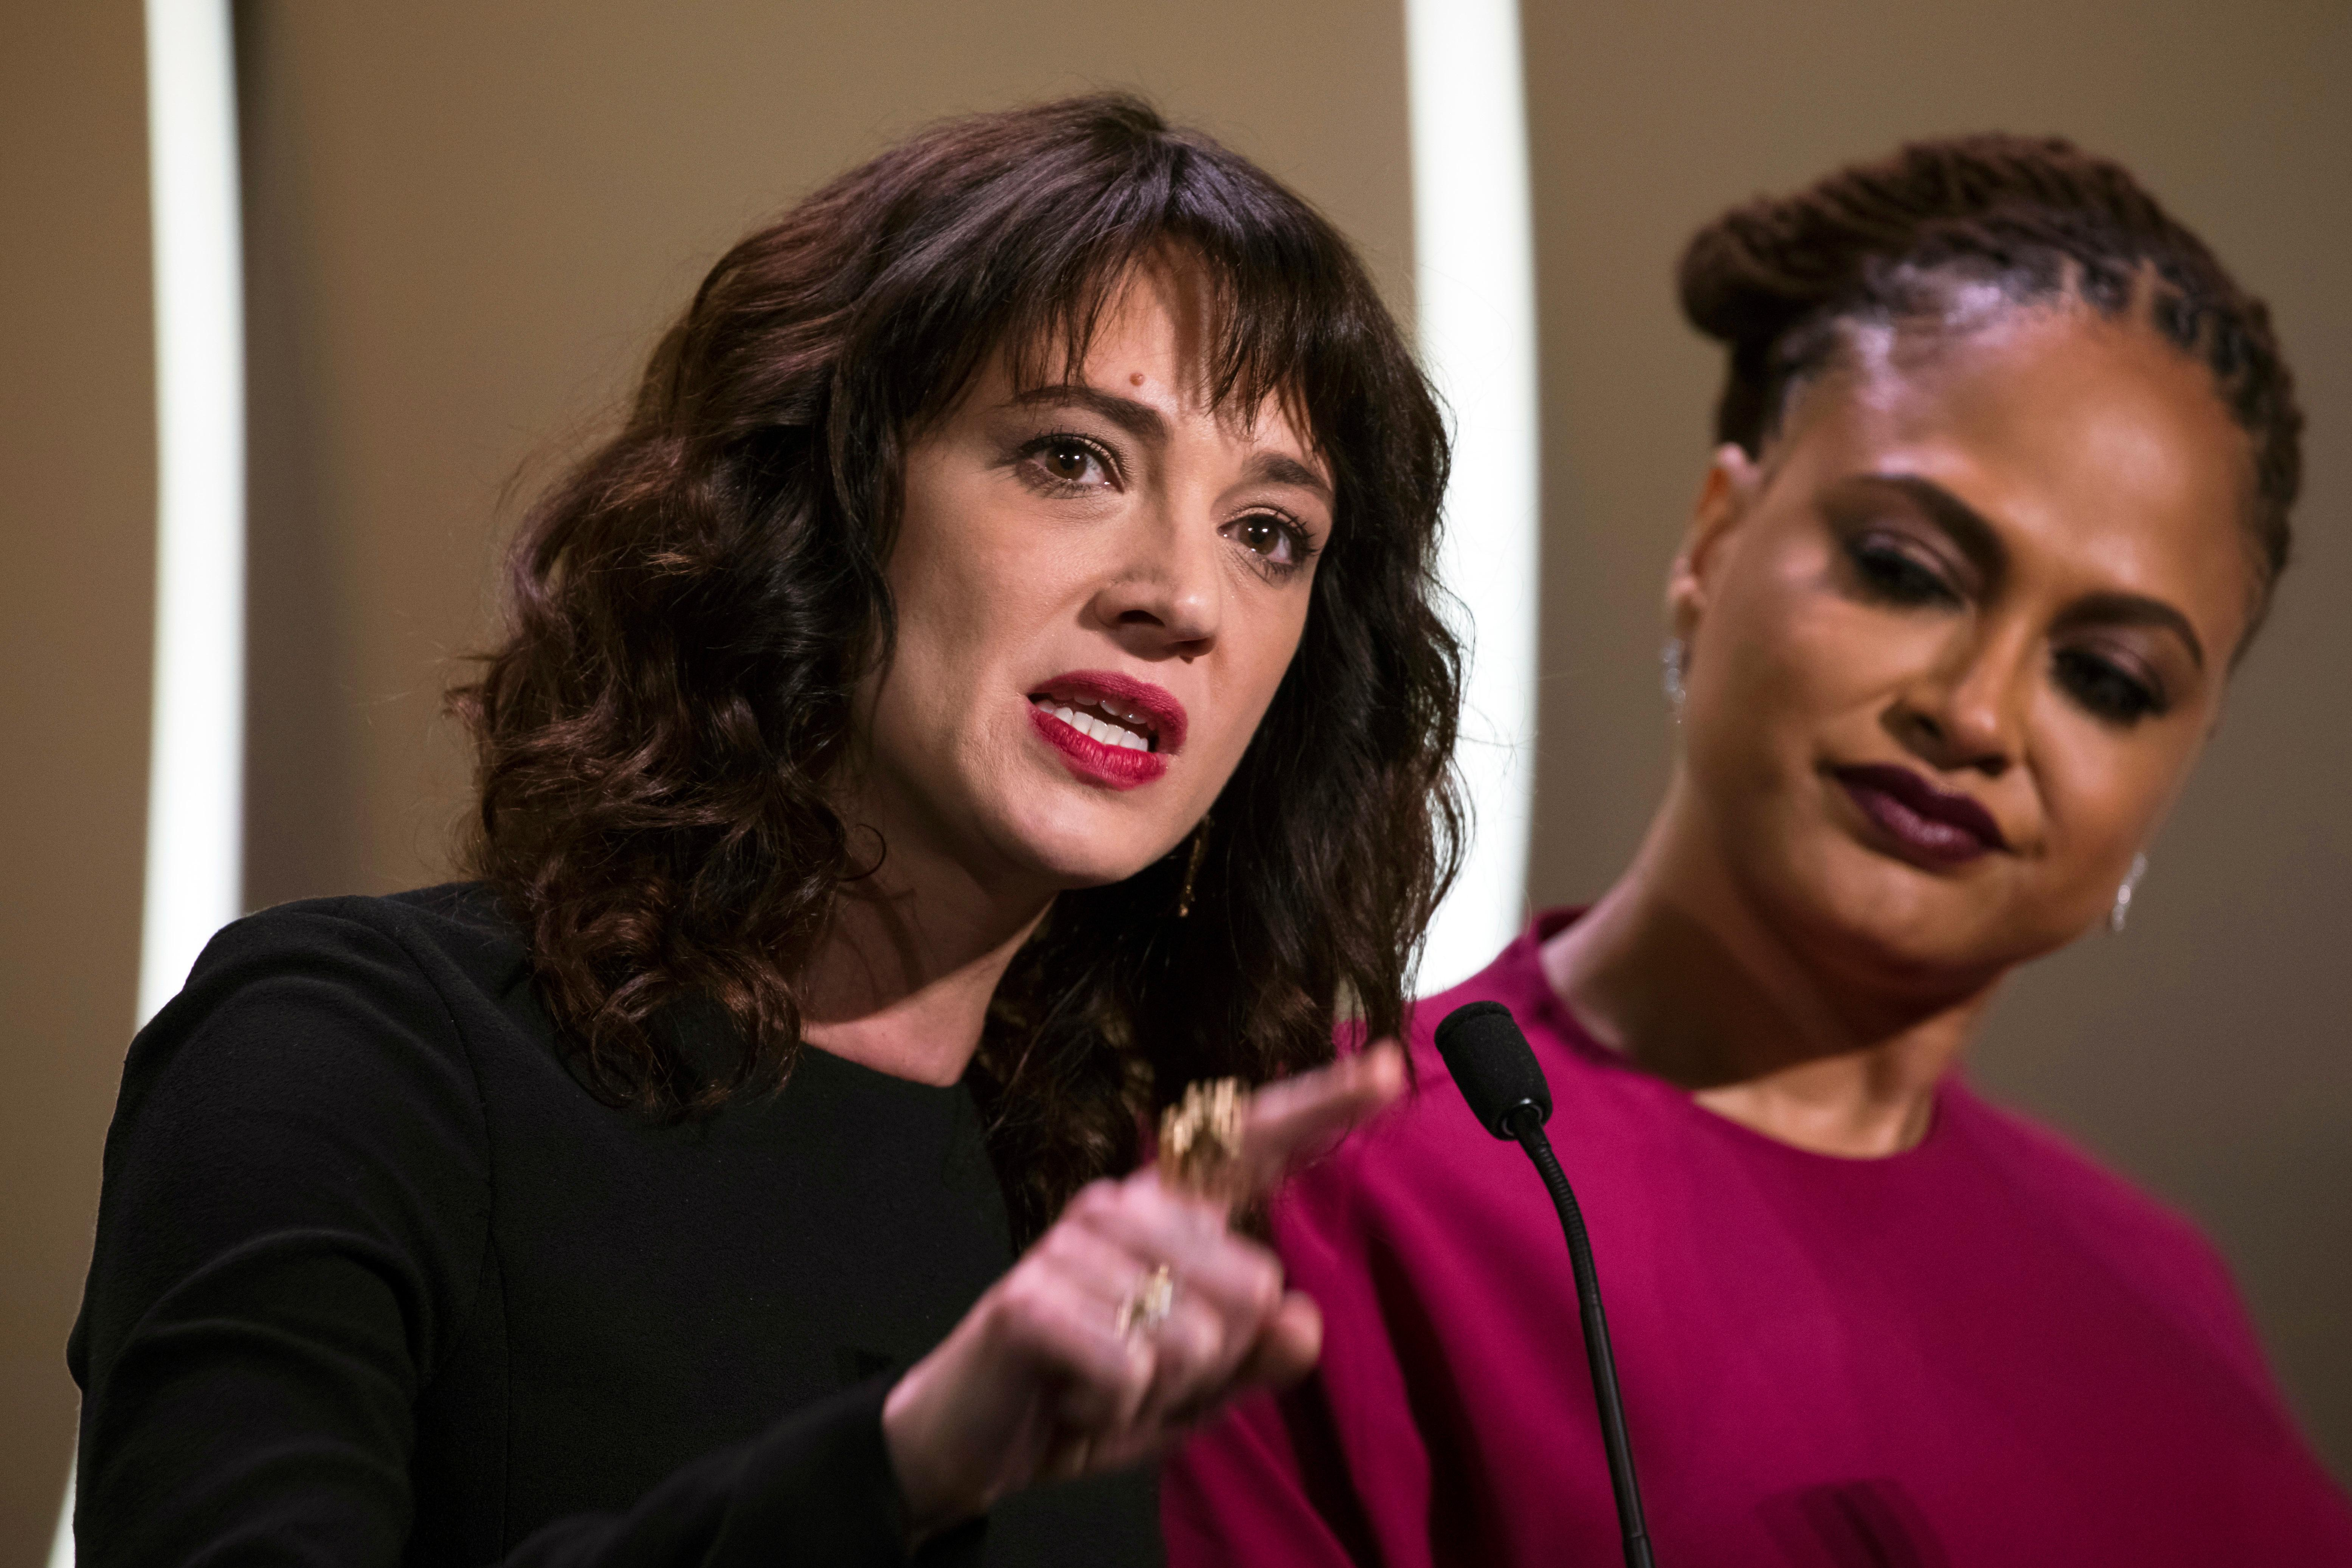 FILE - In this May 19, 2018 file photo, actress Asia Argento speaks about being raped by Harvey Weinstein as director Ava Duvernay looks on at right during the closing ceremony of the 71st international film festival, Cannes, in France. Argento, one of the most prominent activists of the #MeToo movement against sexual harassment, recently settled a complaint filed against her by a young actor and musician who said she sexually assaulted him when he was 17, the New York Times reported. (Photo by Vianney Le Caer/Invision/AP, File)